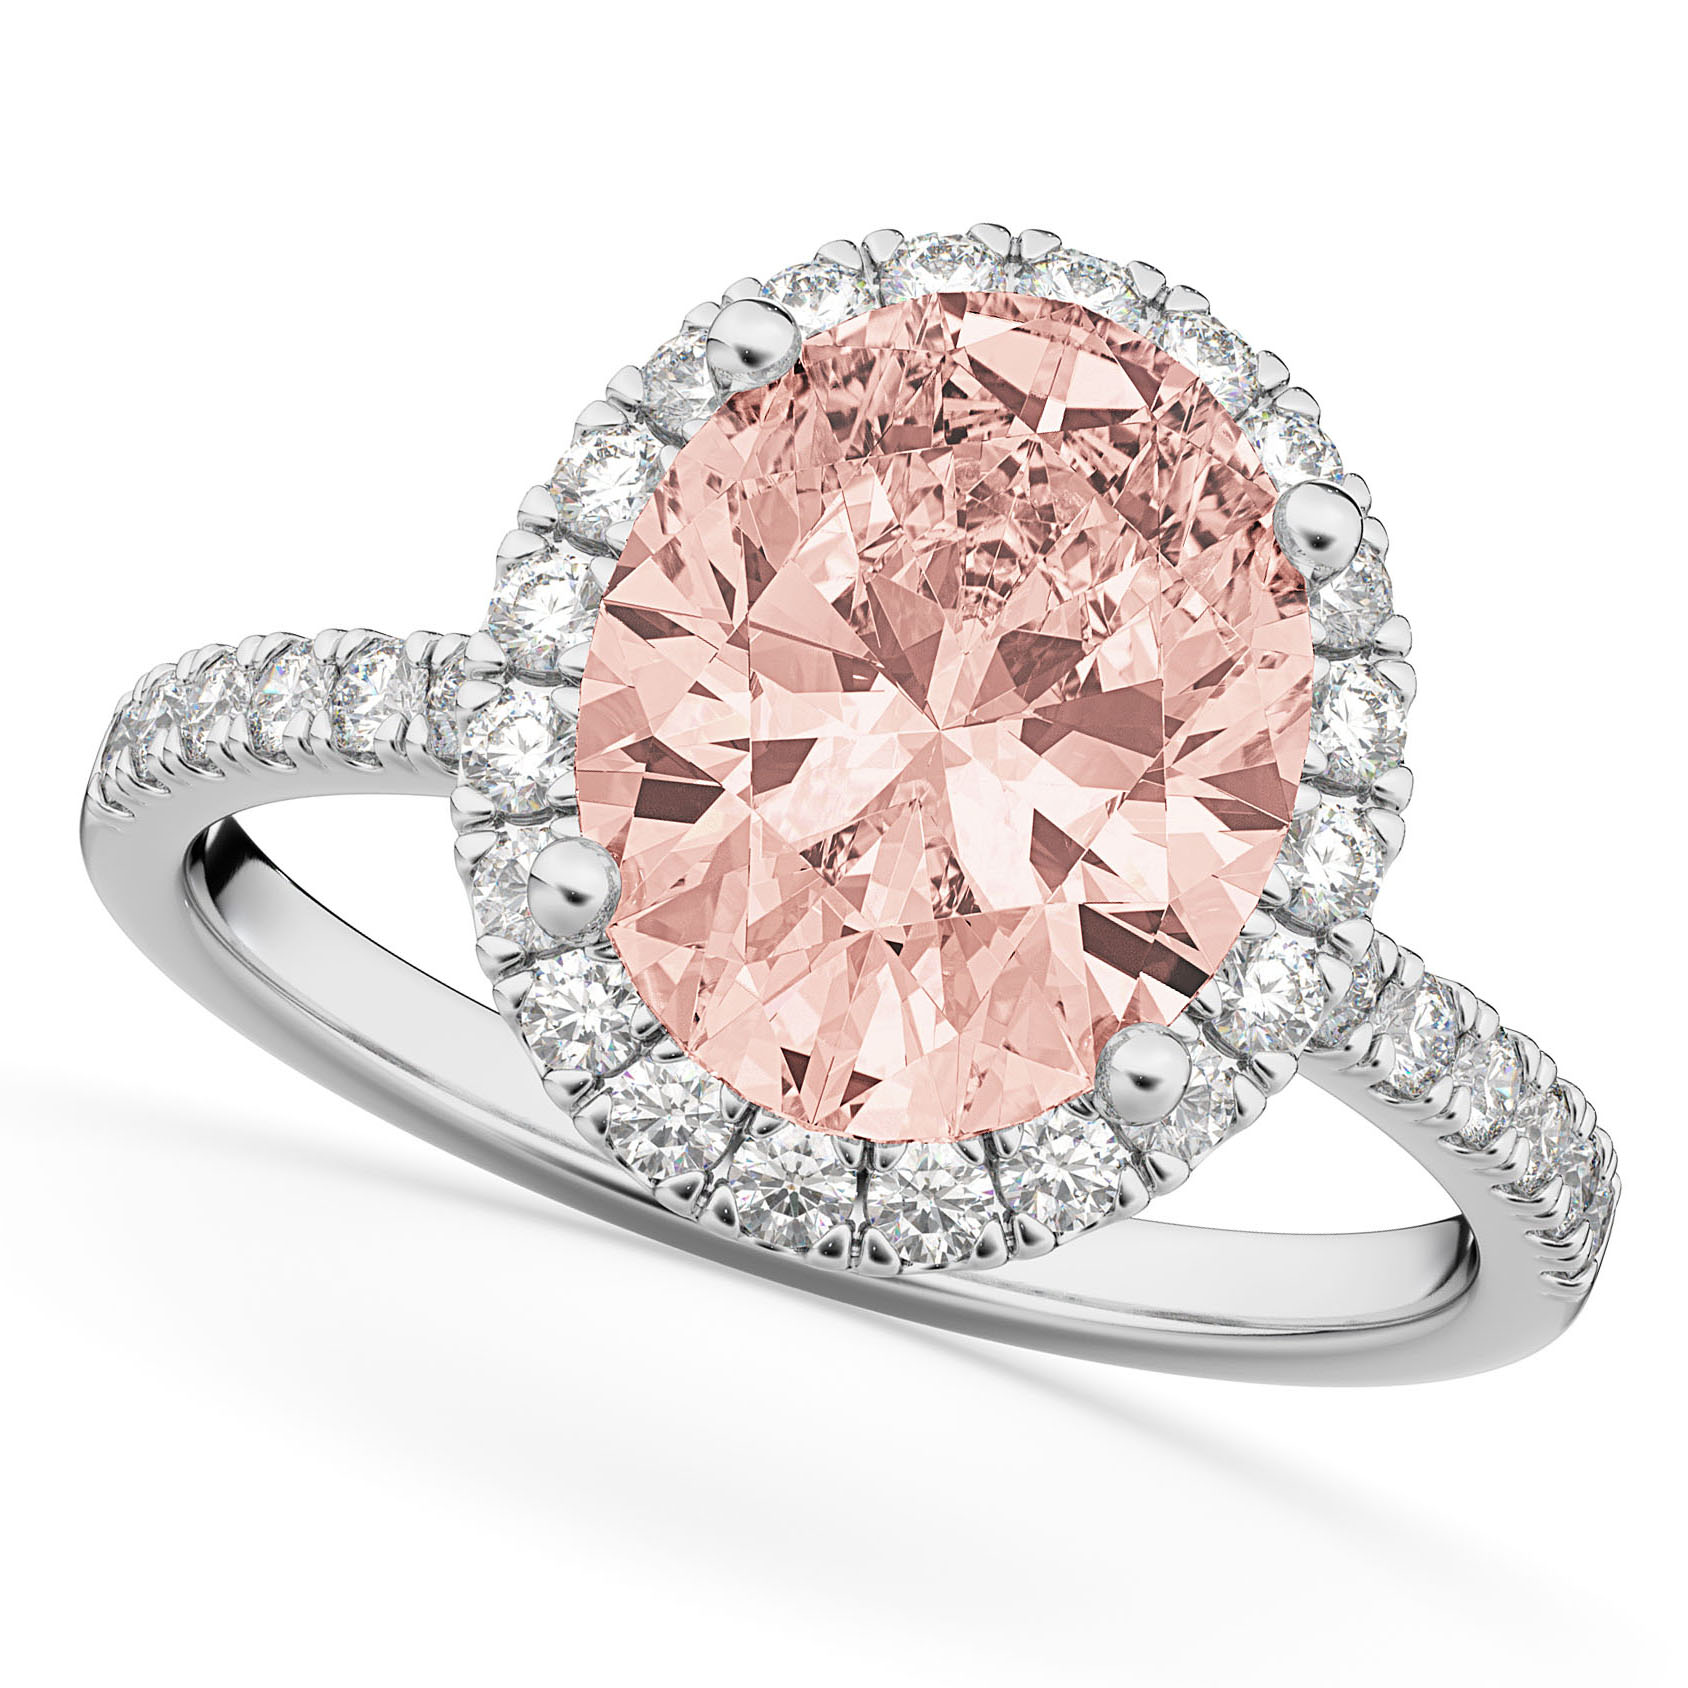 Oval Cut Halo Morganite & Diamond Engagement Ring 14K White Gold 2.81ct